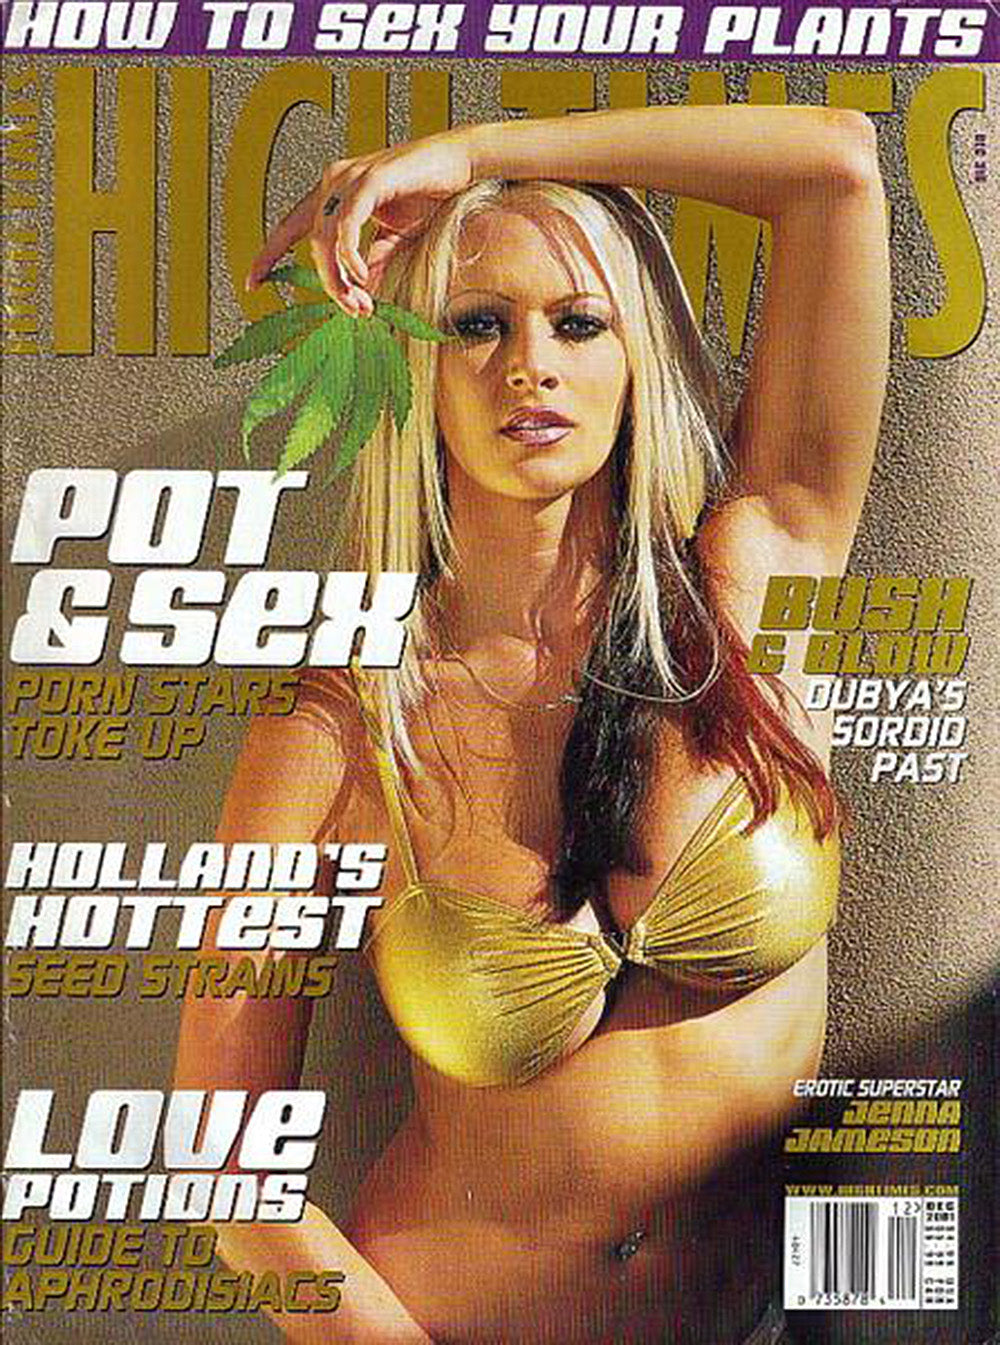 HIGH TIMES Magazine December 2001 - Issue 316